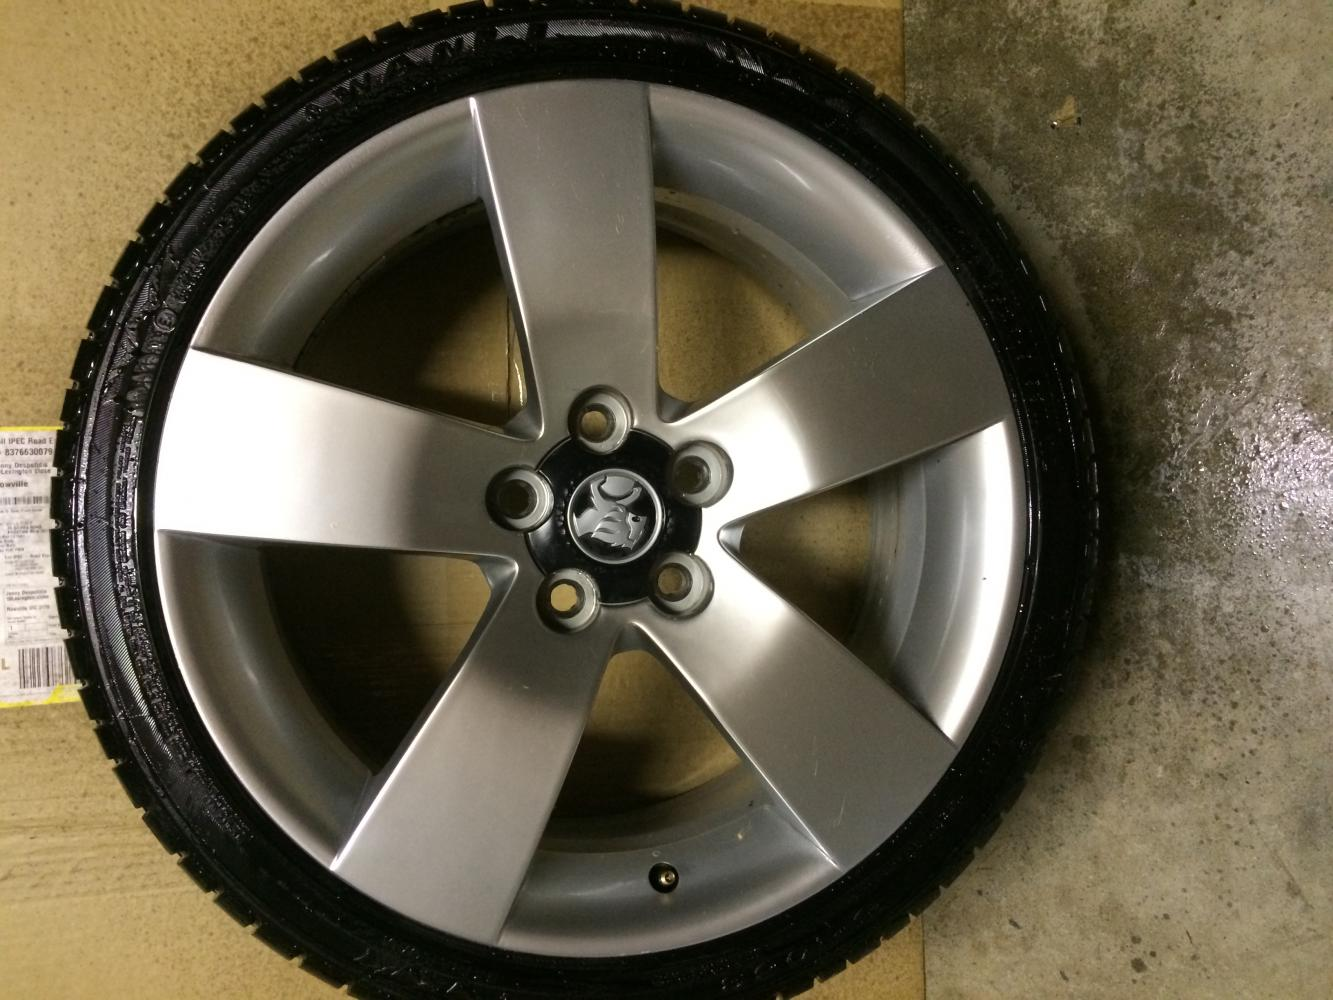 VIC] - Genuine Holden 19inch Ve SSV Alloy Wheels fit pre ve